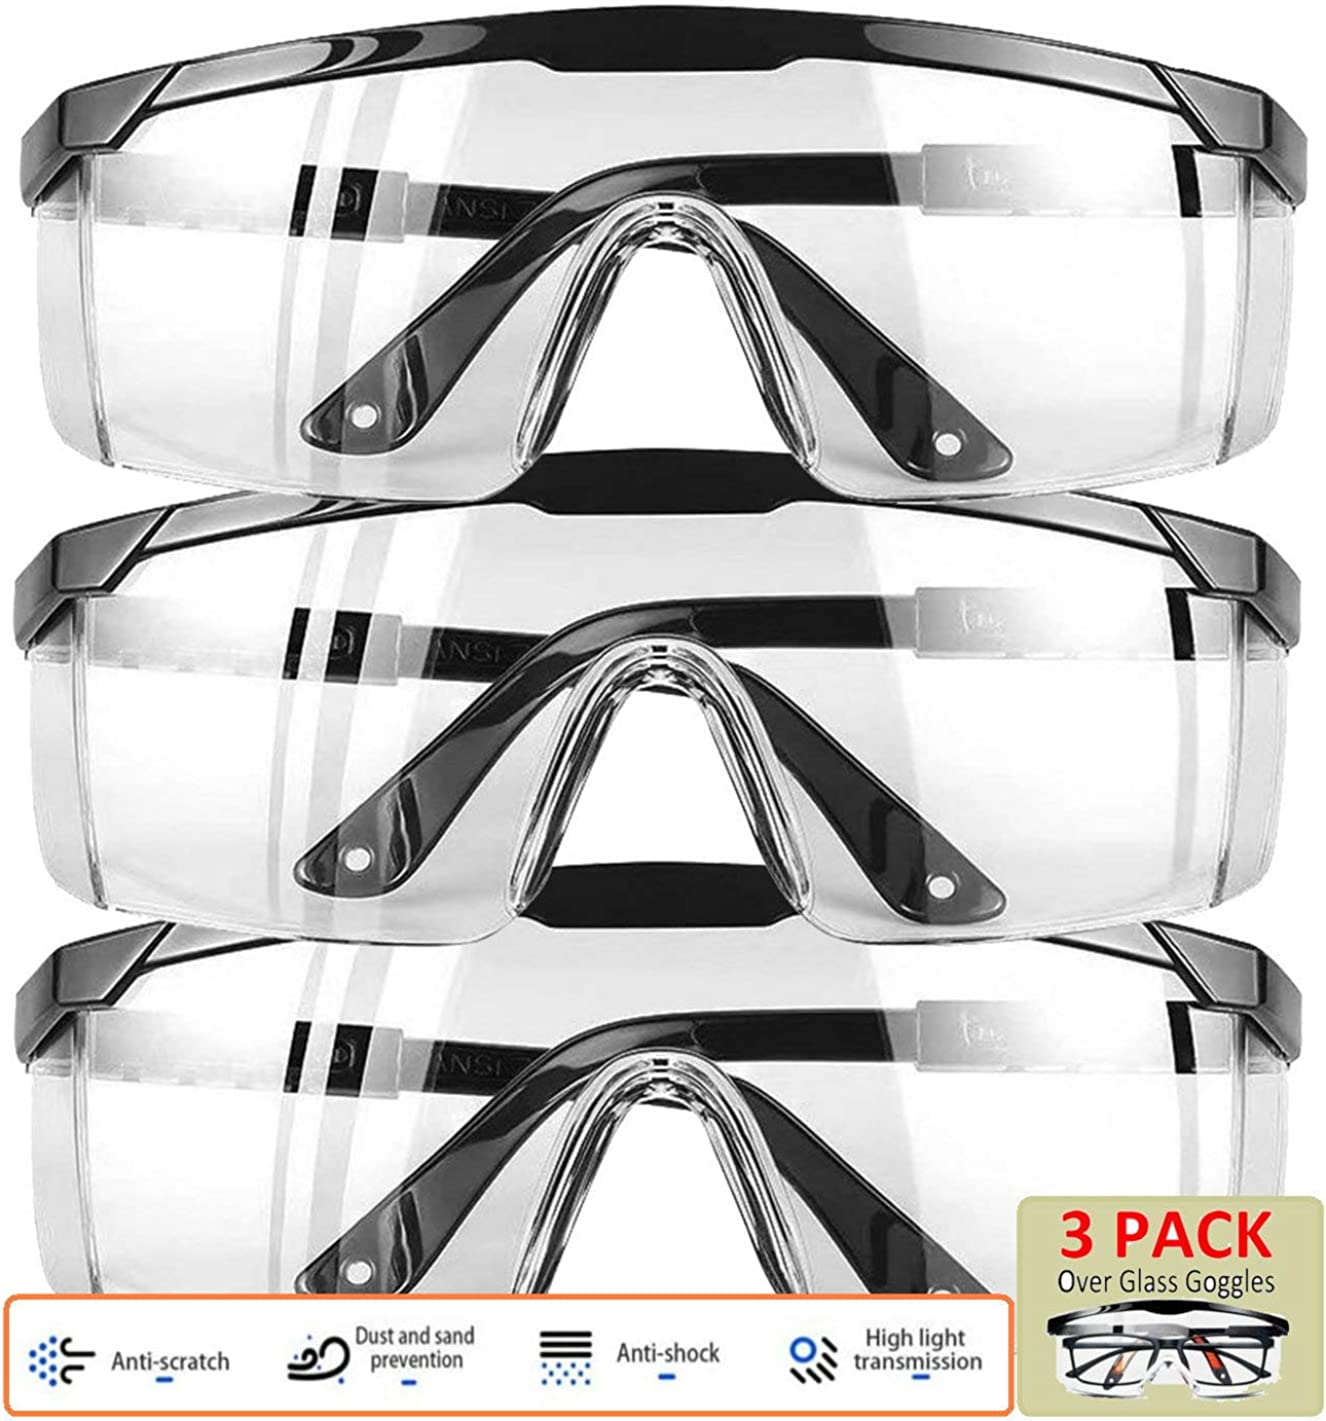 3 PACK Safety Goggles,Eyes Protection Goggles Protective Eyewear Safety Goggles Clear Anti-droplet/Anti-Scratch Safety Glasses, Transparent Frame Black Color